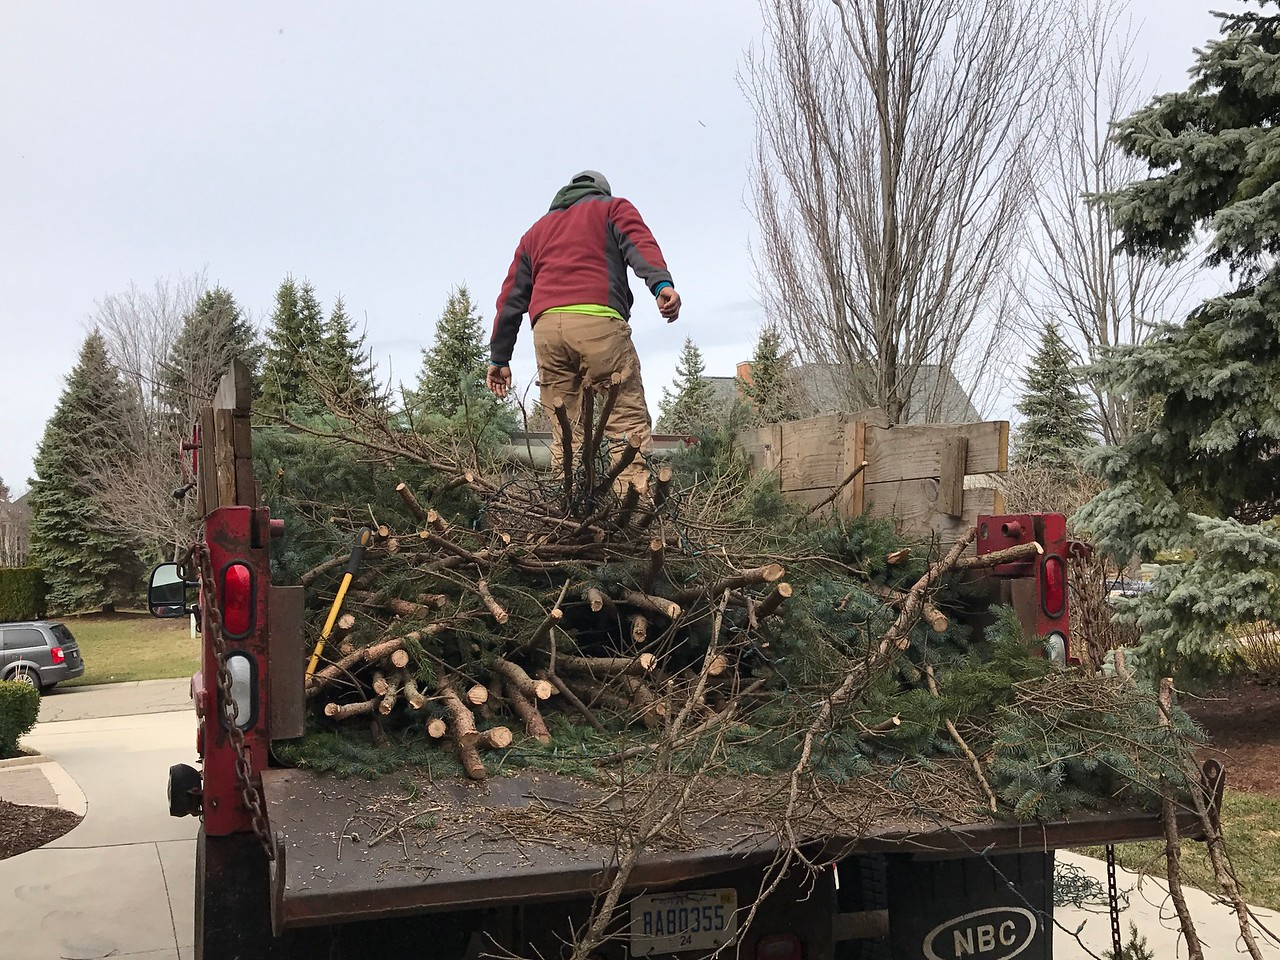 Work began quickly in many areas to clean up the mess and remove fallen trees.  A crew from Greener Grounds Outdoor Solutions works to remove fallen evergreen trees in Oakland County. Photo by Stephen Frye / Digital First Media.